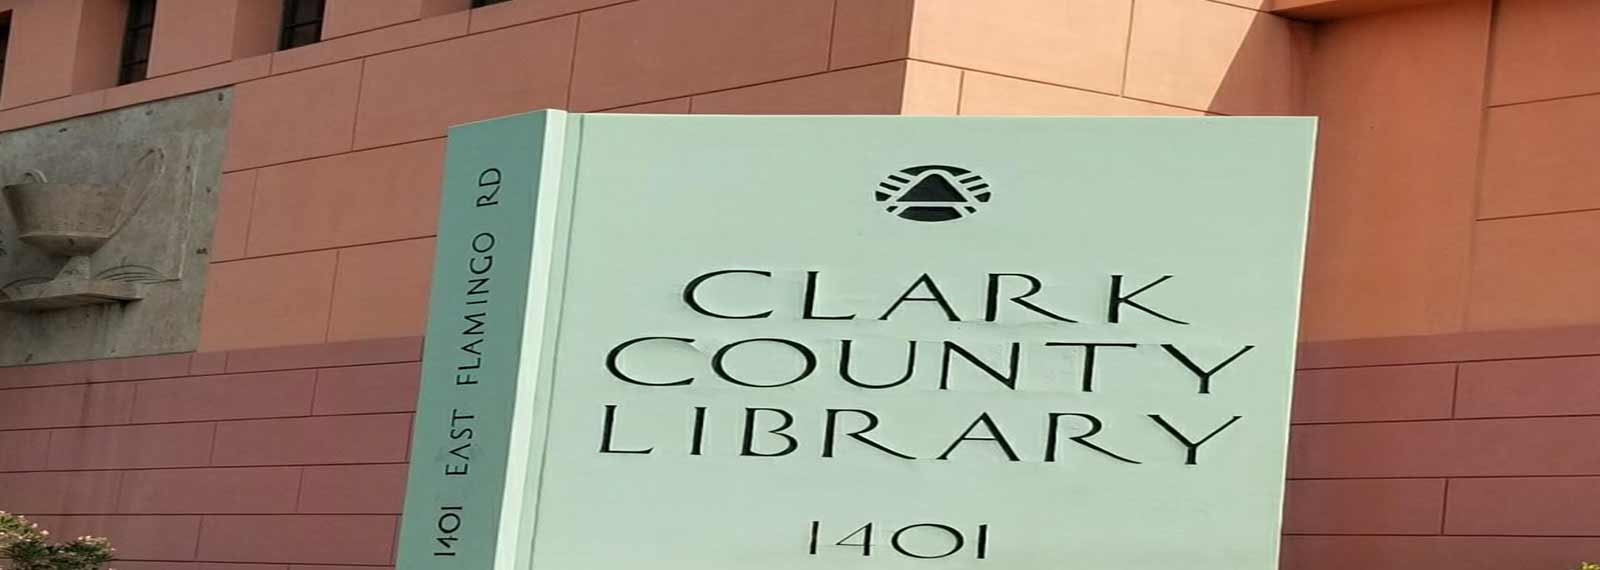 Clark County Library building.